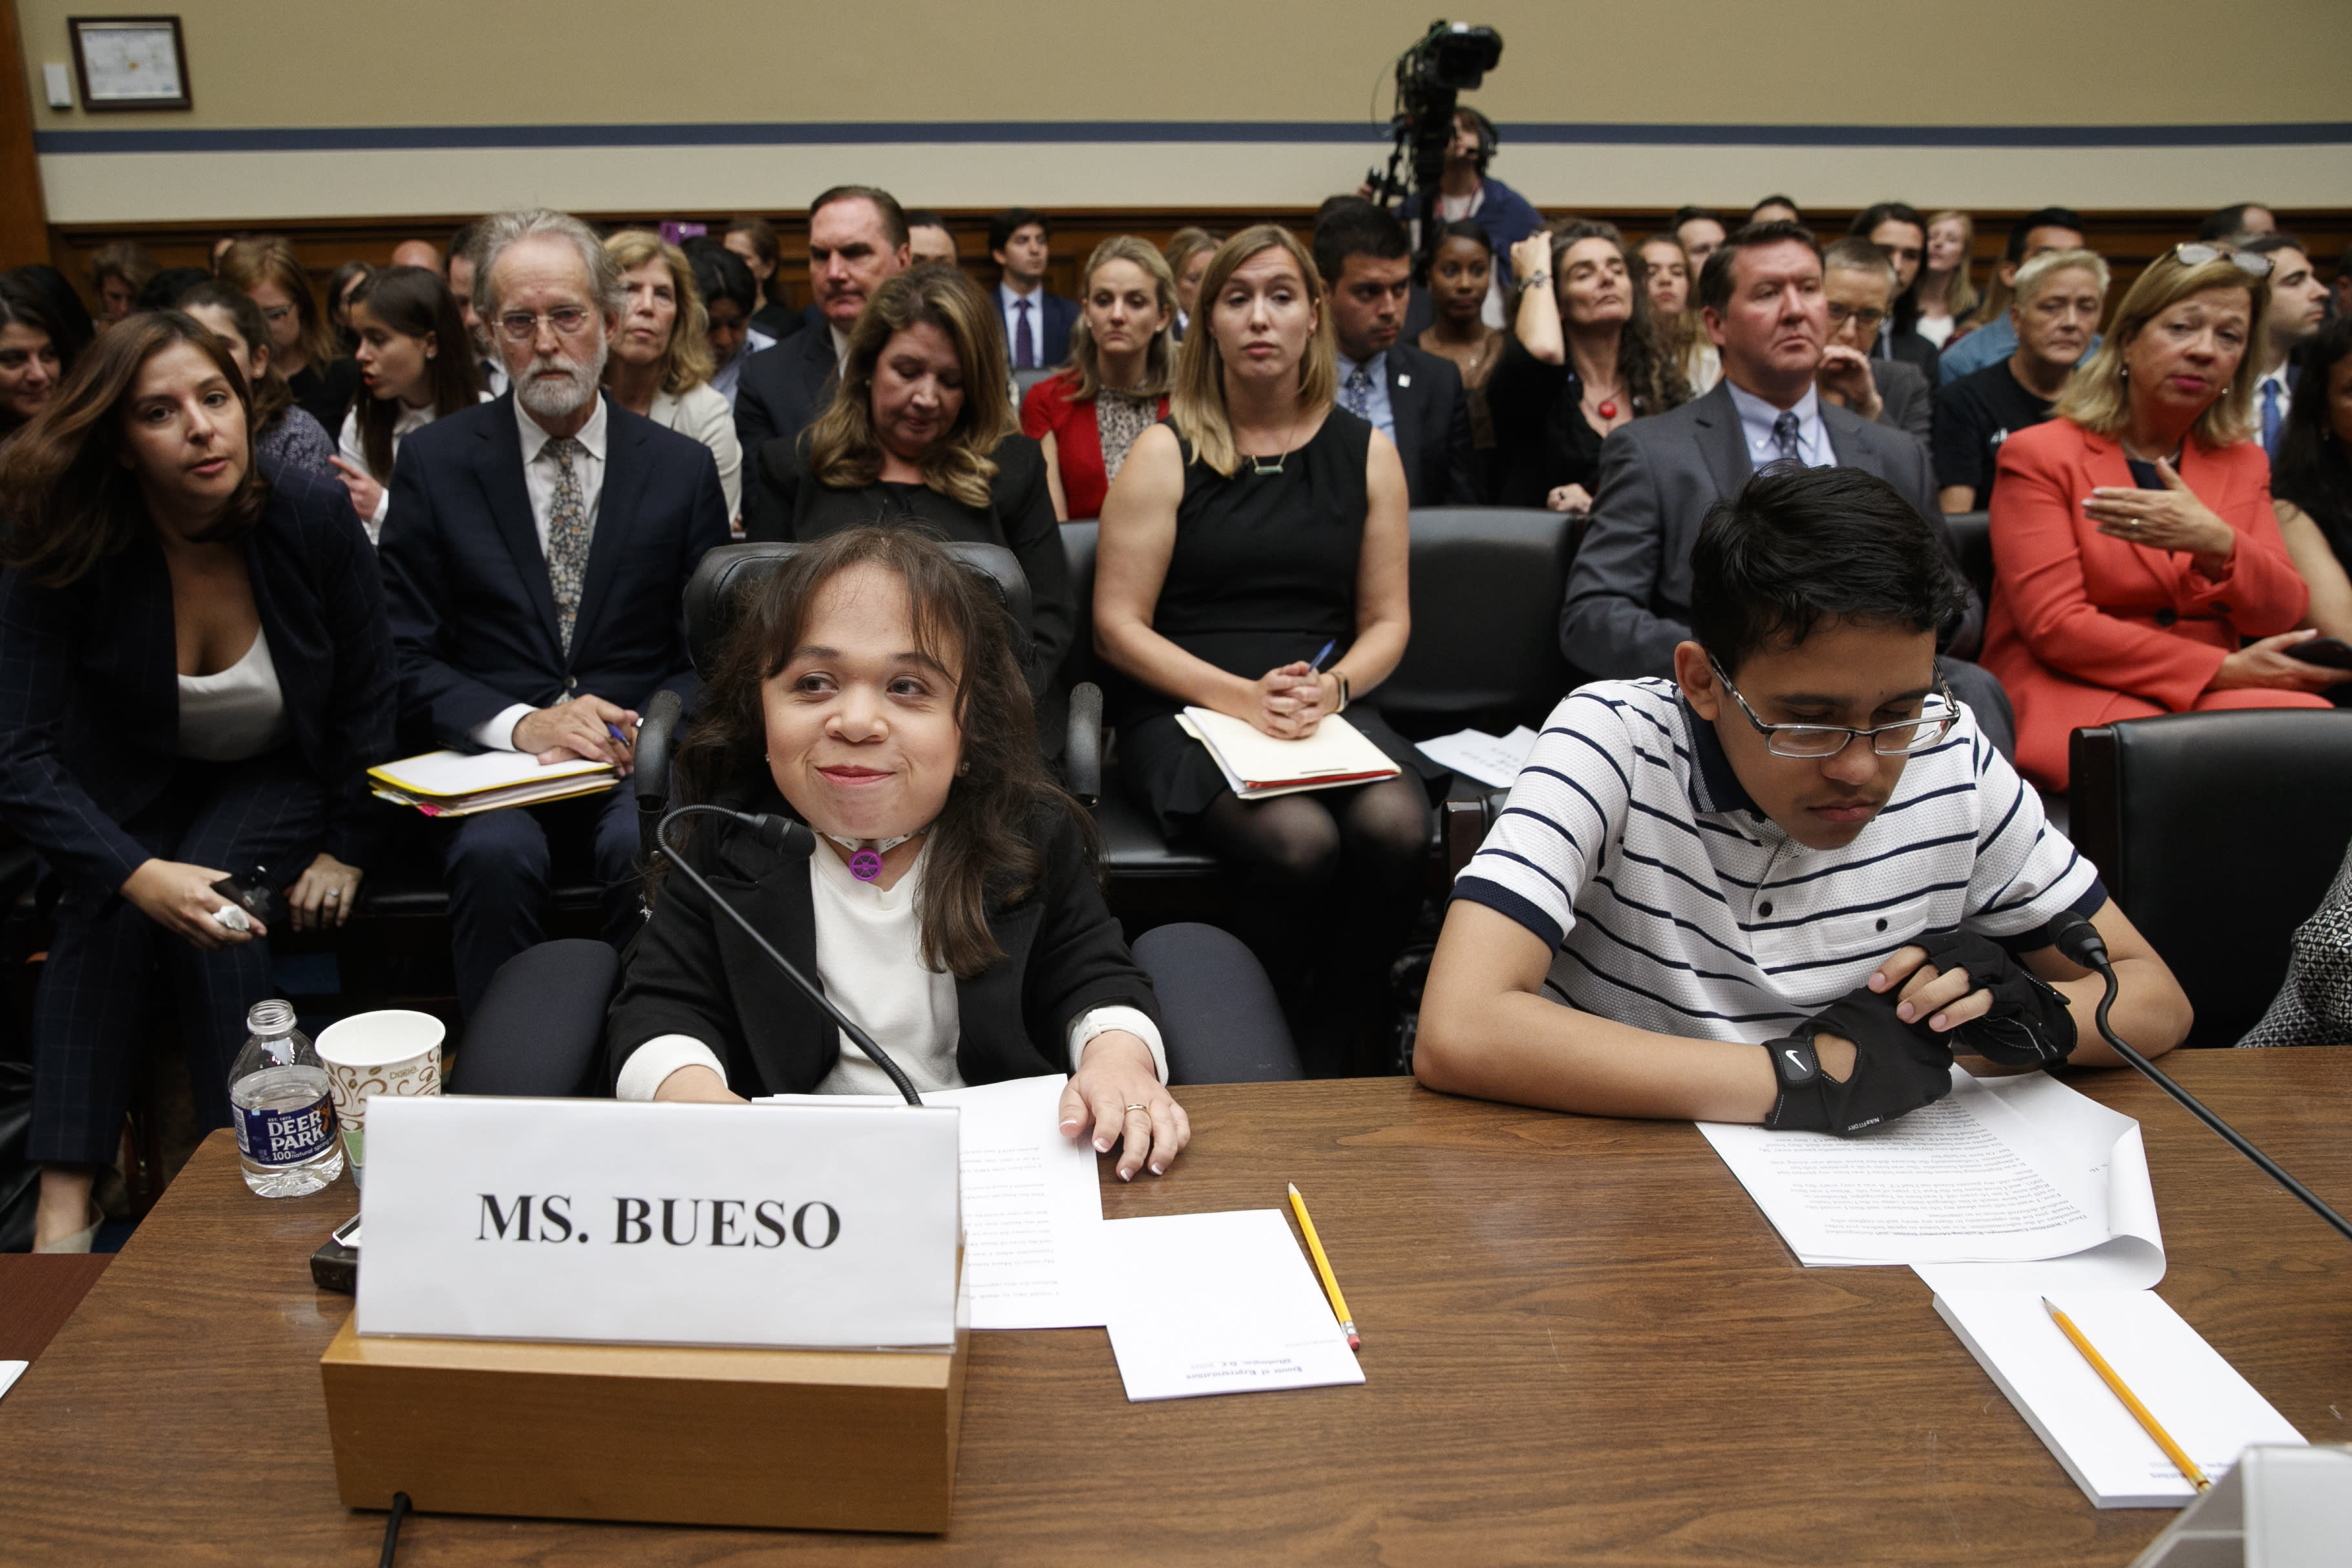 Maria Isabel Bueso, 24, of Concord, Calif., left, and Jonathan Sanchez, 16, of Boston, who both have medical deferred action, take their places at the start of a House Oversight subcommittee hearing into the Trump administration's decision to stop considering requests from immigrants seeking to remain in the country for medical treatment and other hardships, Wednesday, Sept. 11, 2019, on Capitol Hill in Washington. (AP Photo/Jacquelyn Martin)